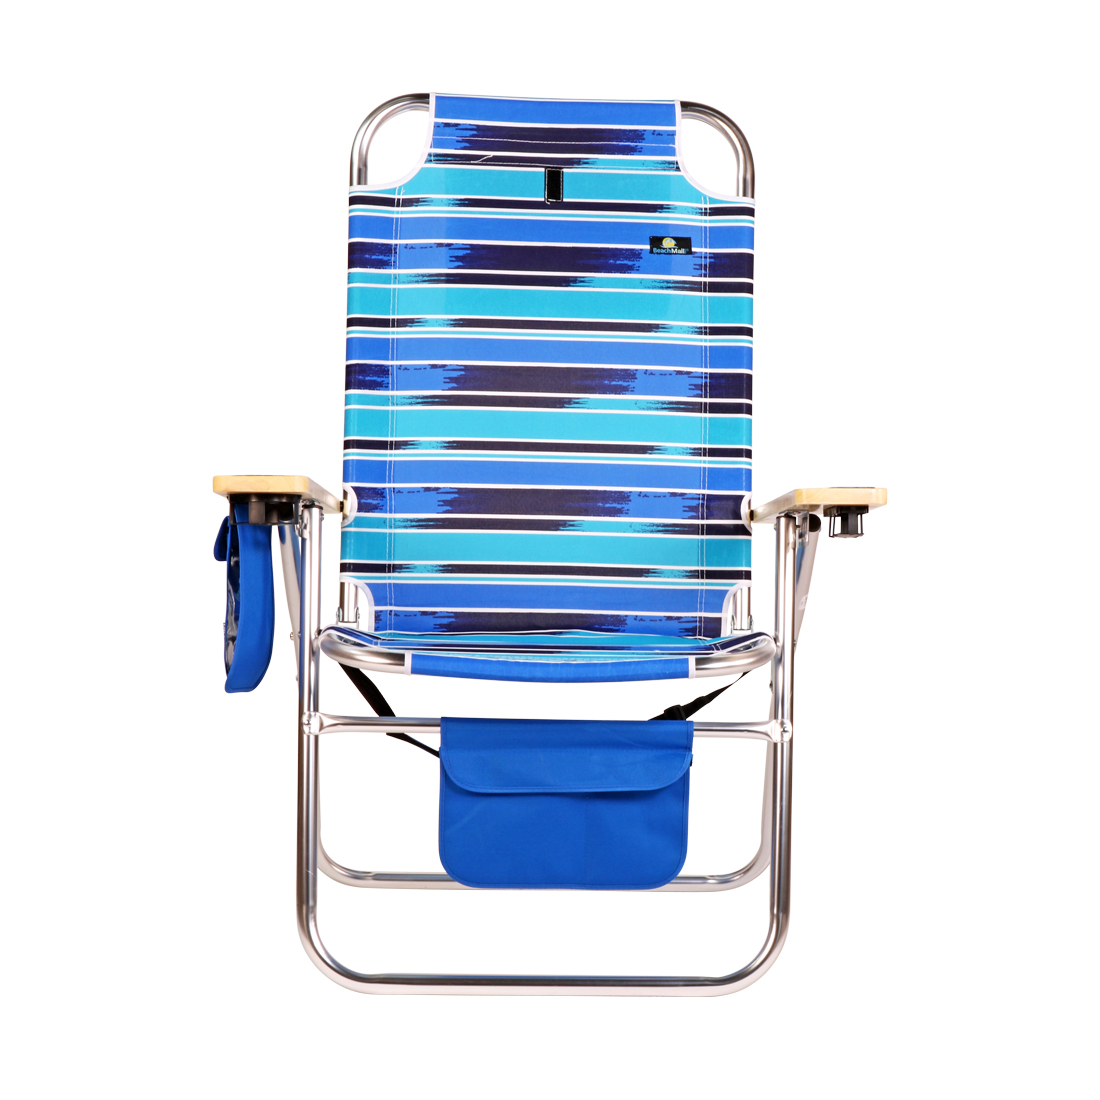 swing chair 300 lb load capacity extra large heavy duty beach chair 17 inches seat height patio chairs swings benches